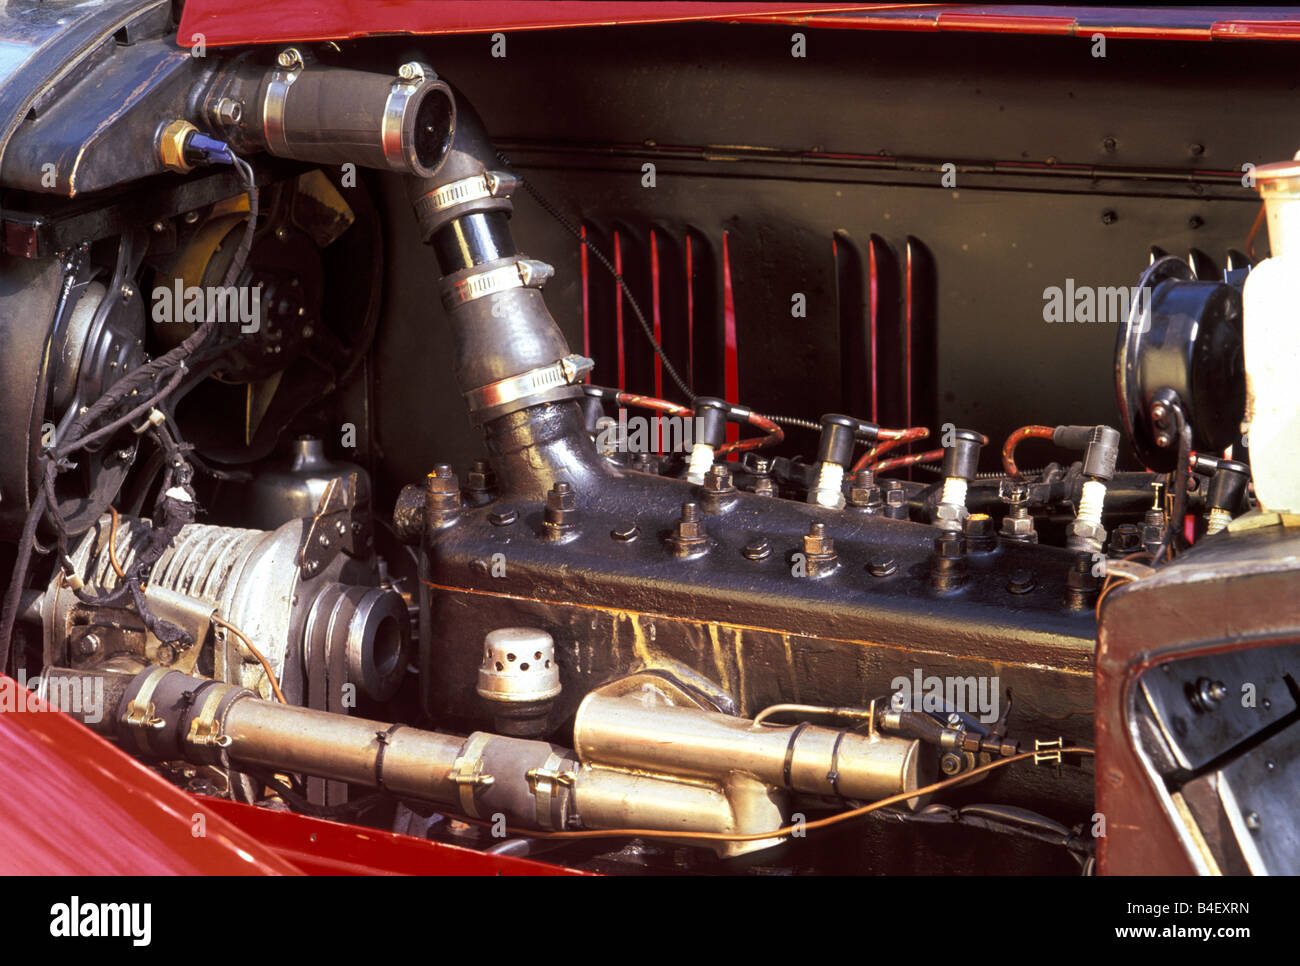 Car, OM Mille Miglia No. 1, Oldsmobile, vintage car,  convertible, convertible top, open, engine compartment, engine - Stock Image